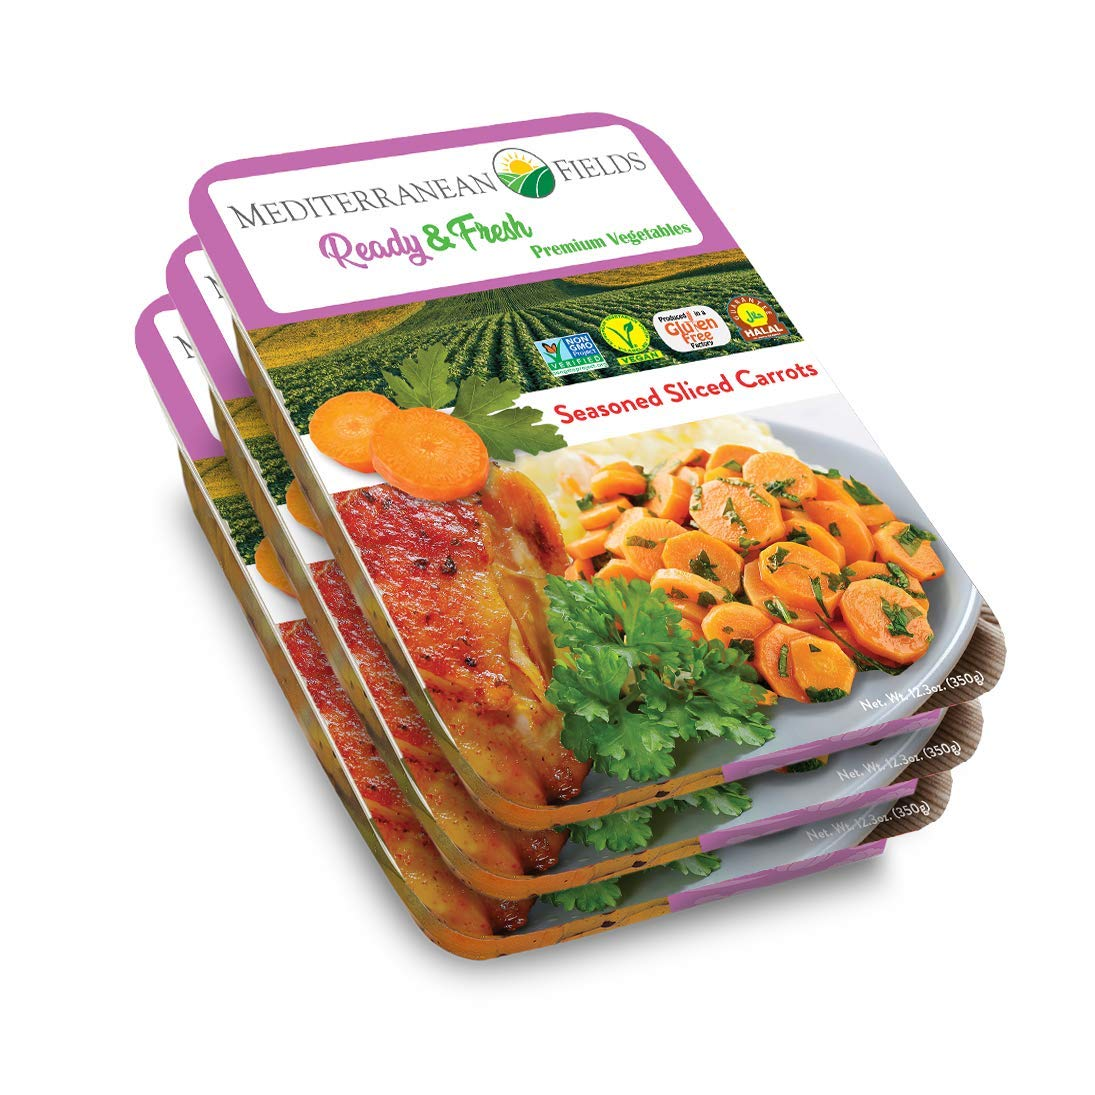 Ready Fresh Packaged Vegetables & Meals, Seasoned Sliced Carrots - 3 Pack. All Natural, Vegan, Plant Based, Non GMO, Keto Friendly, and Gluten Free